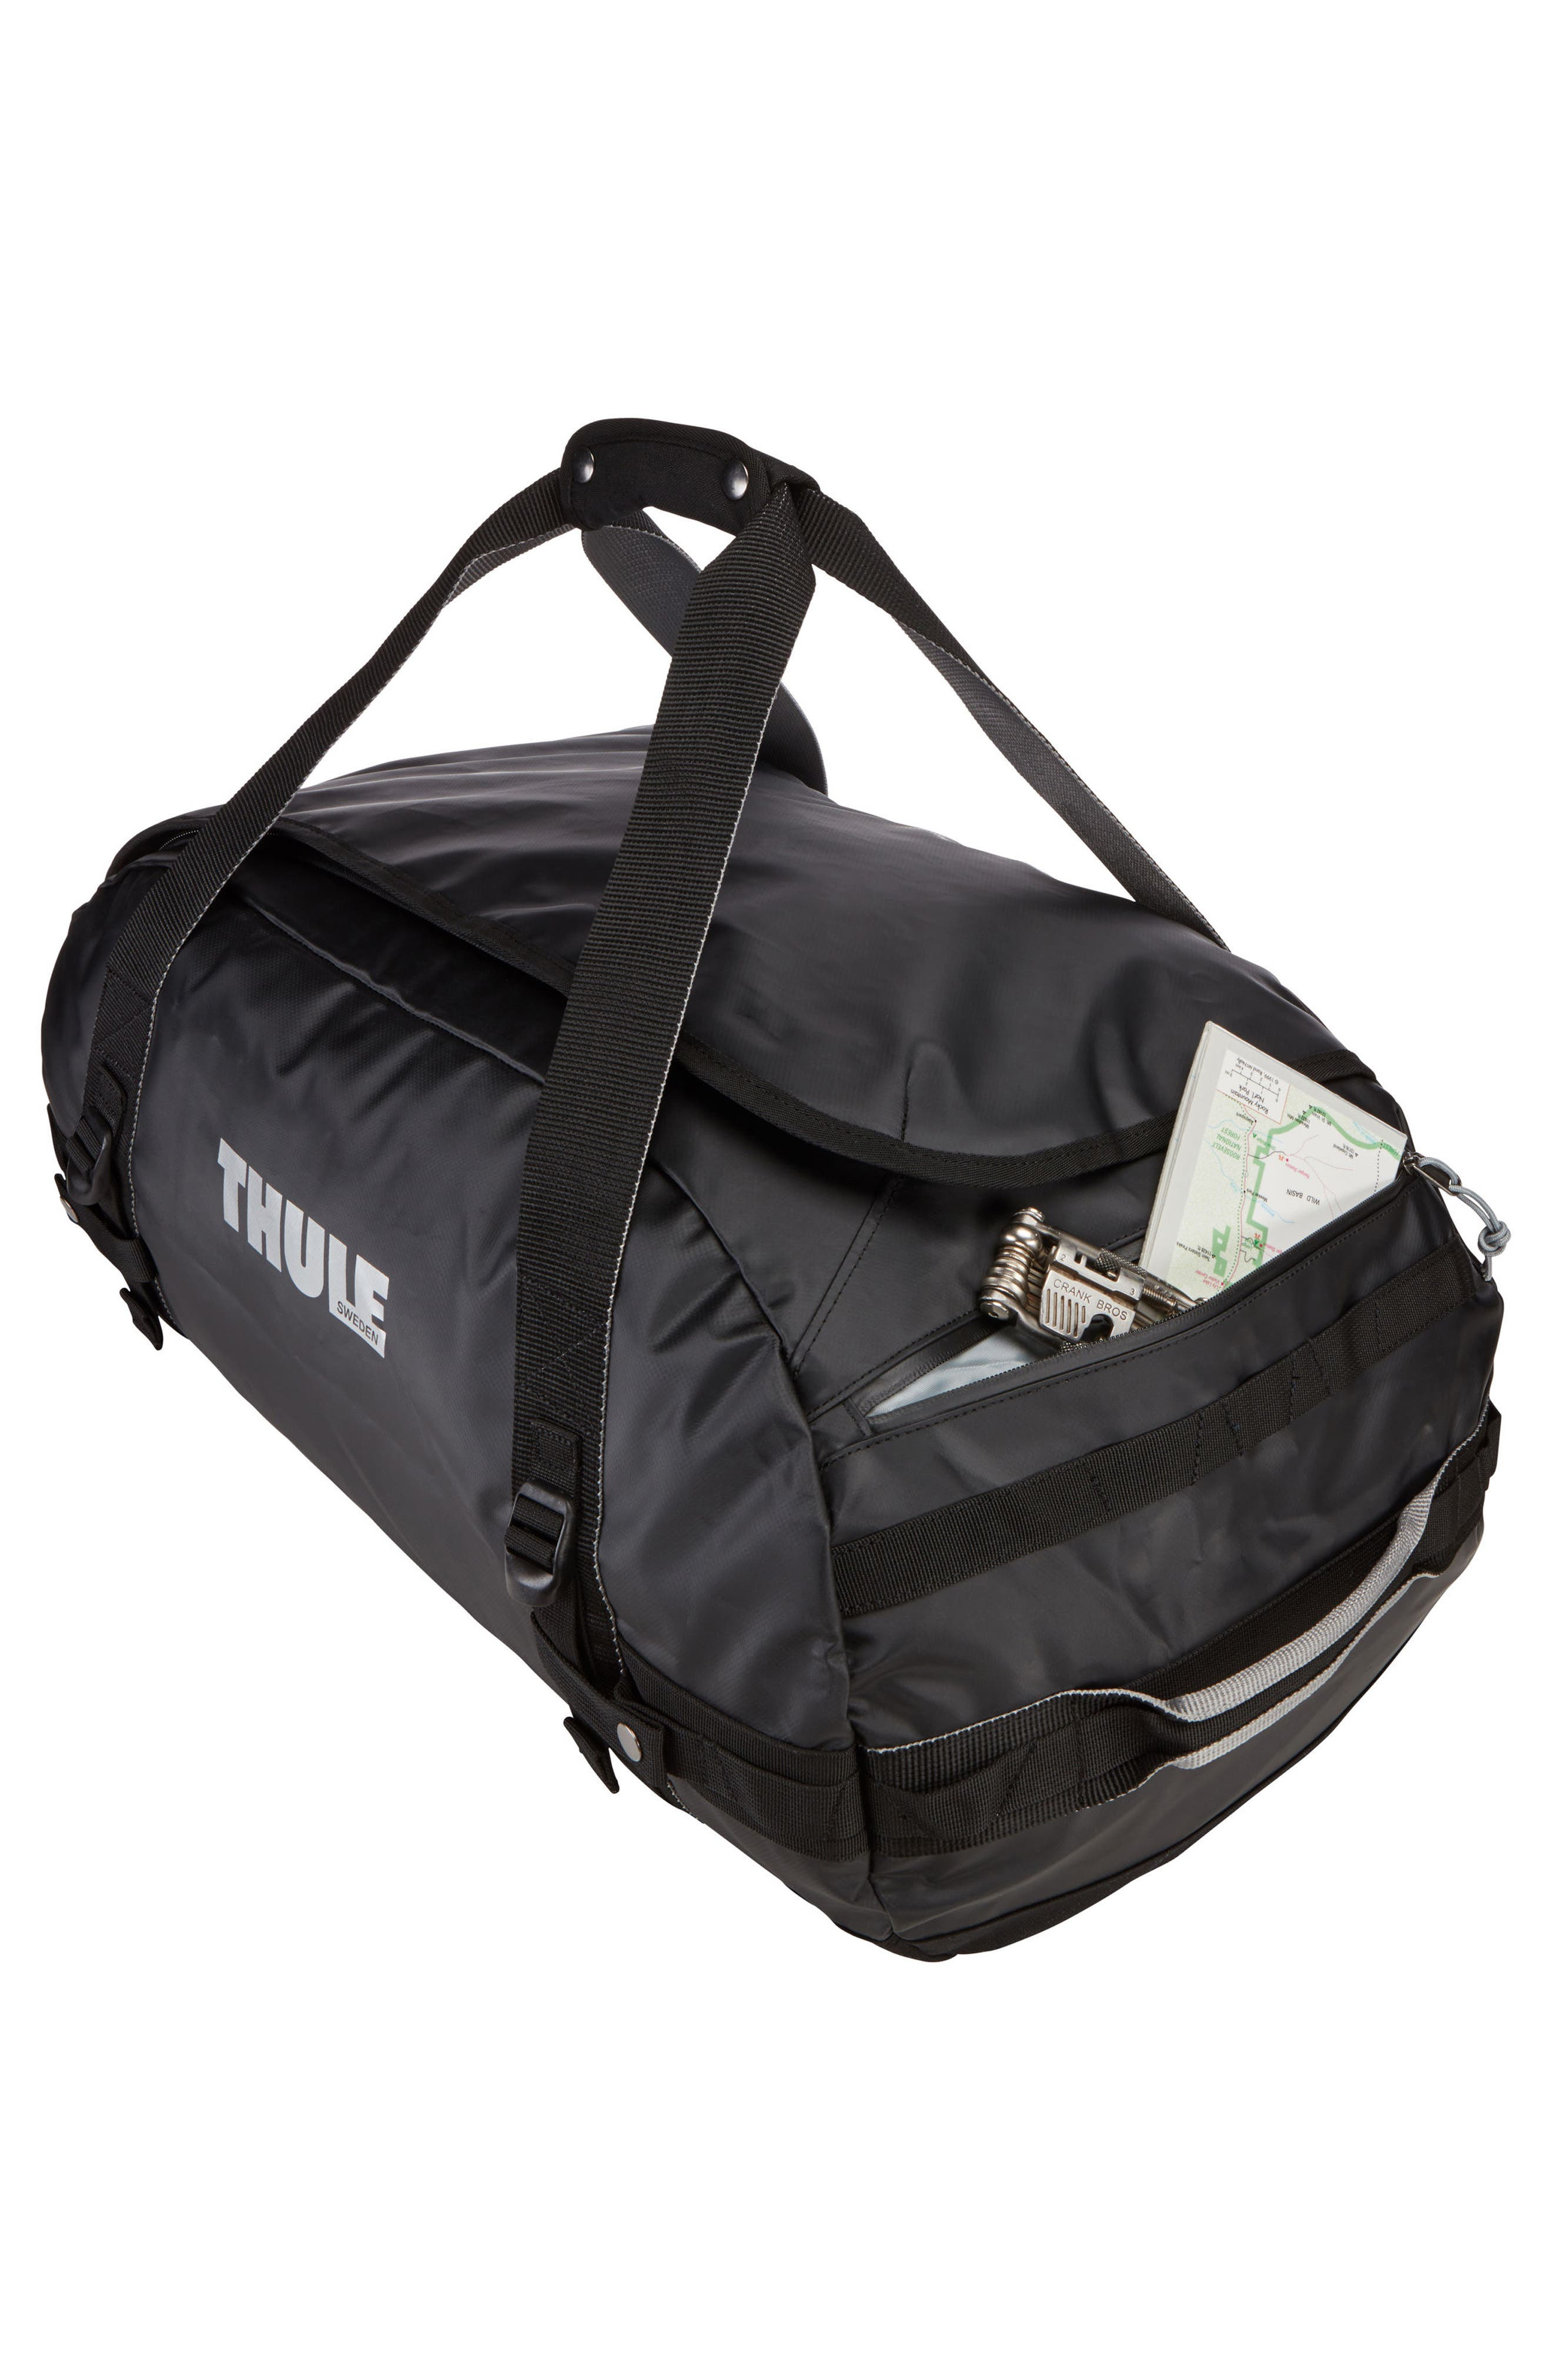 Chasm 70-Liter Convertible Duffel Bag,                             Alternate thumbnail 6, color,                             BLACK